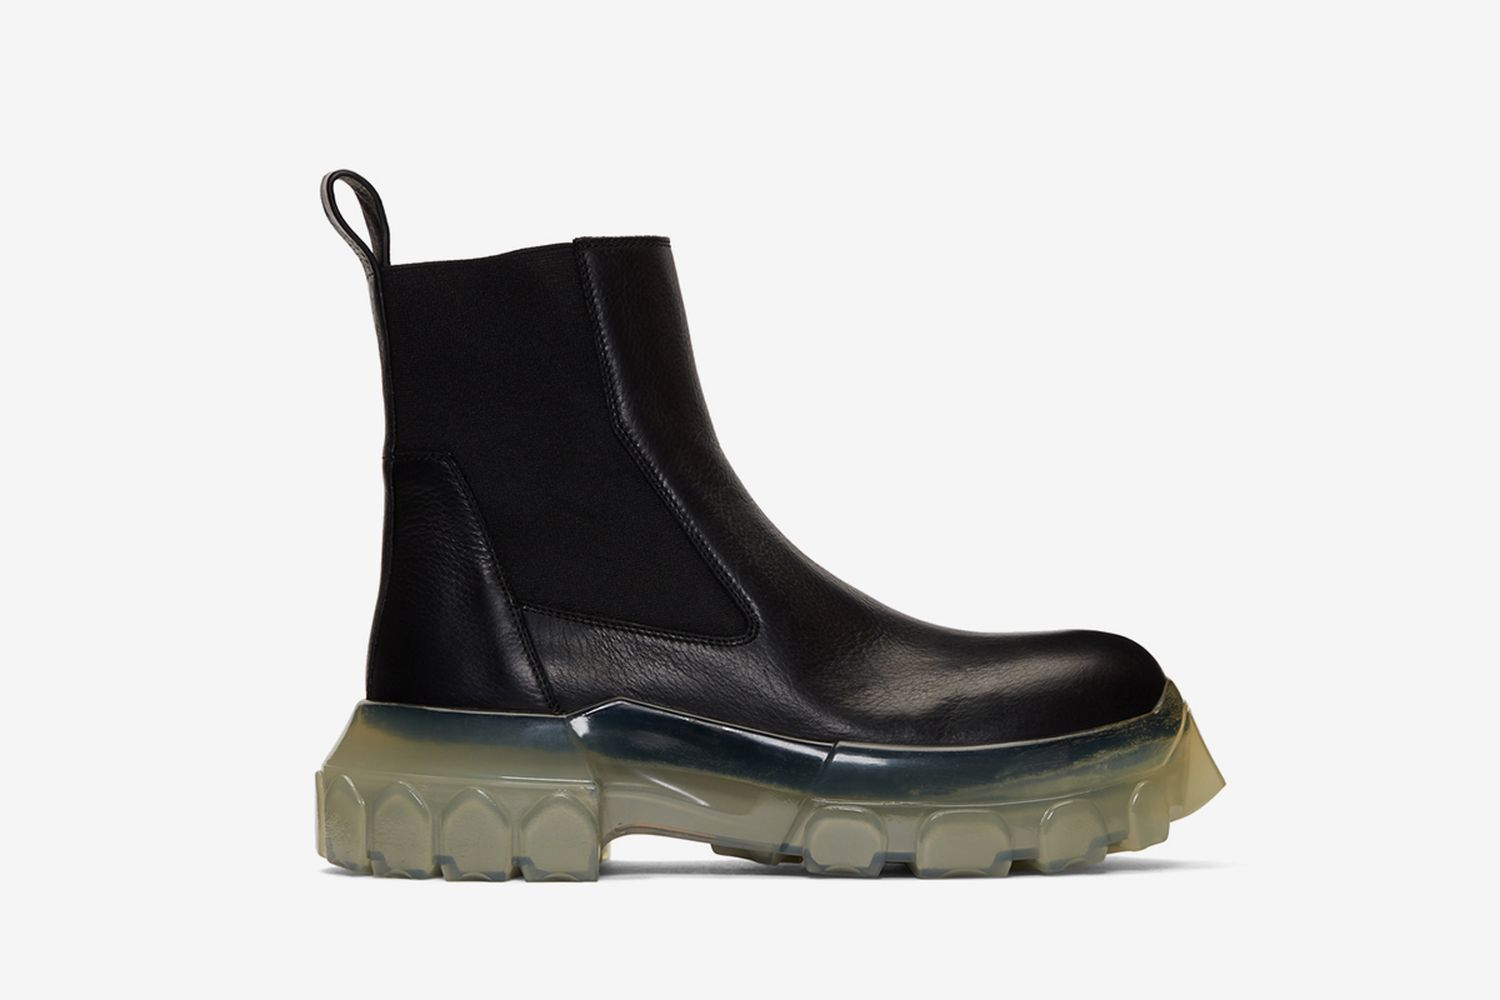 Tractor Beetle Boots